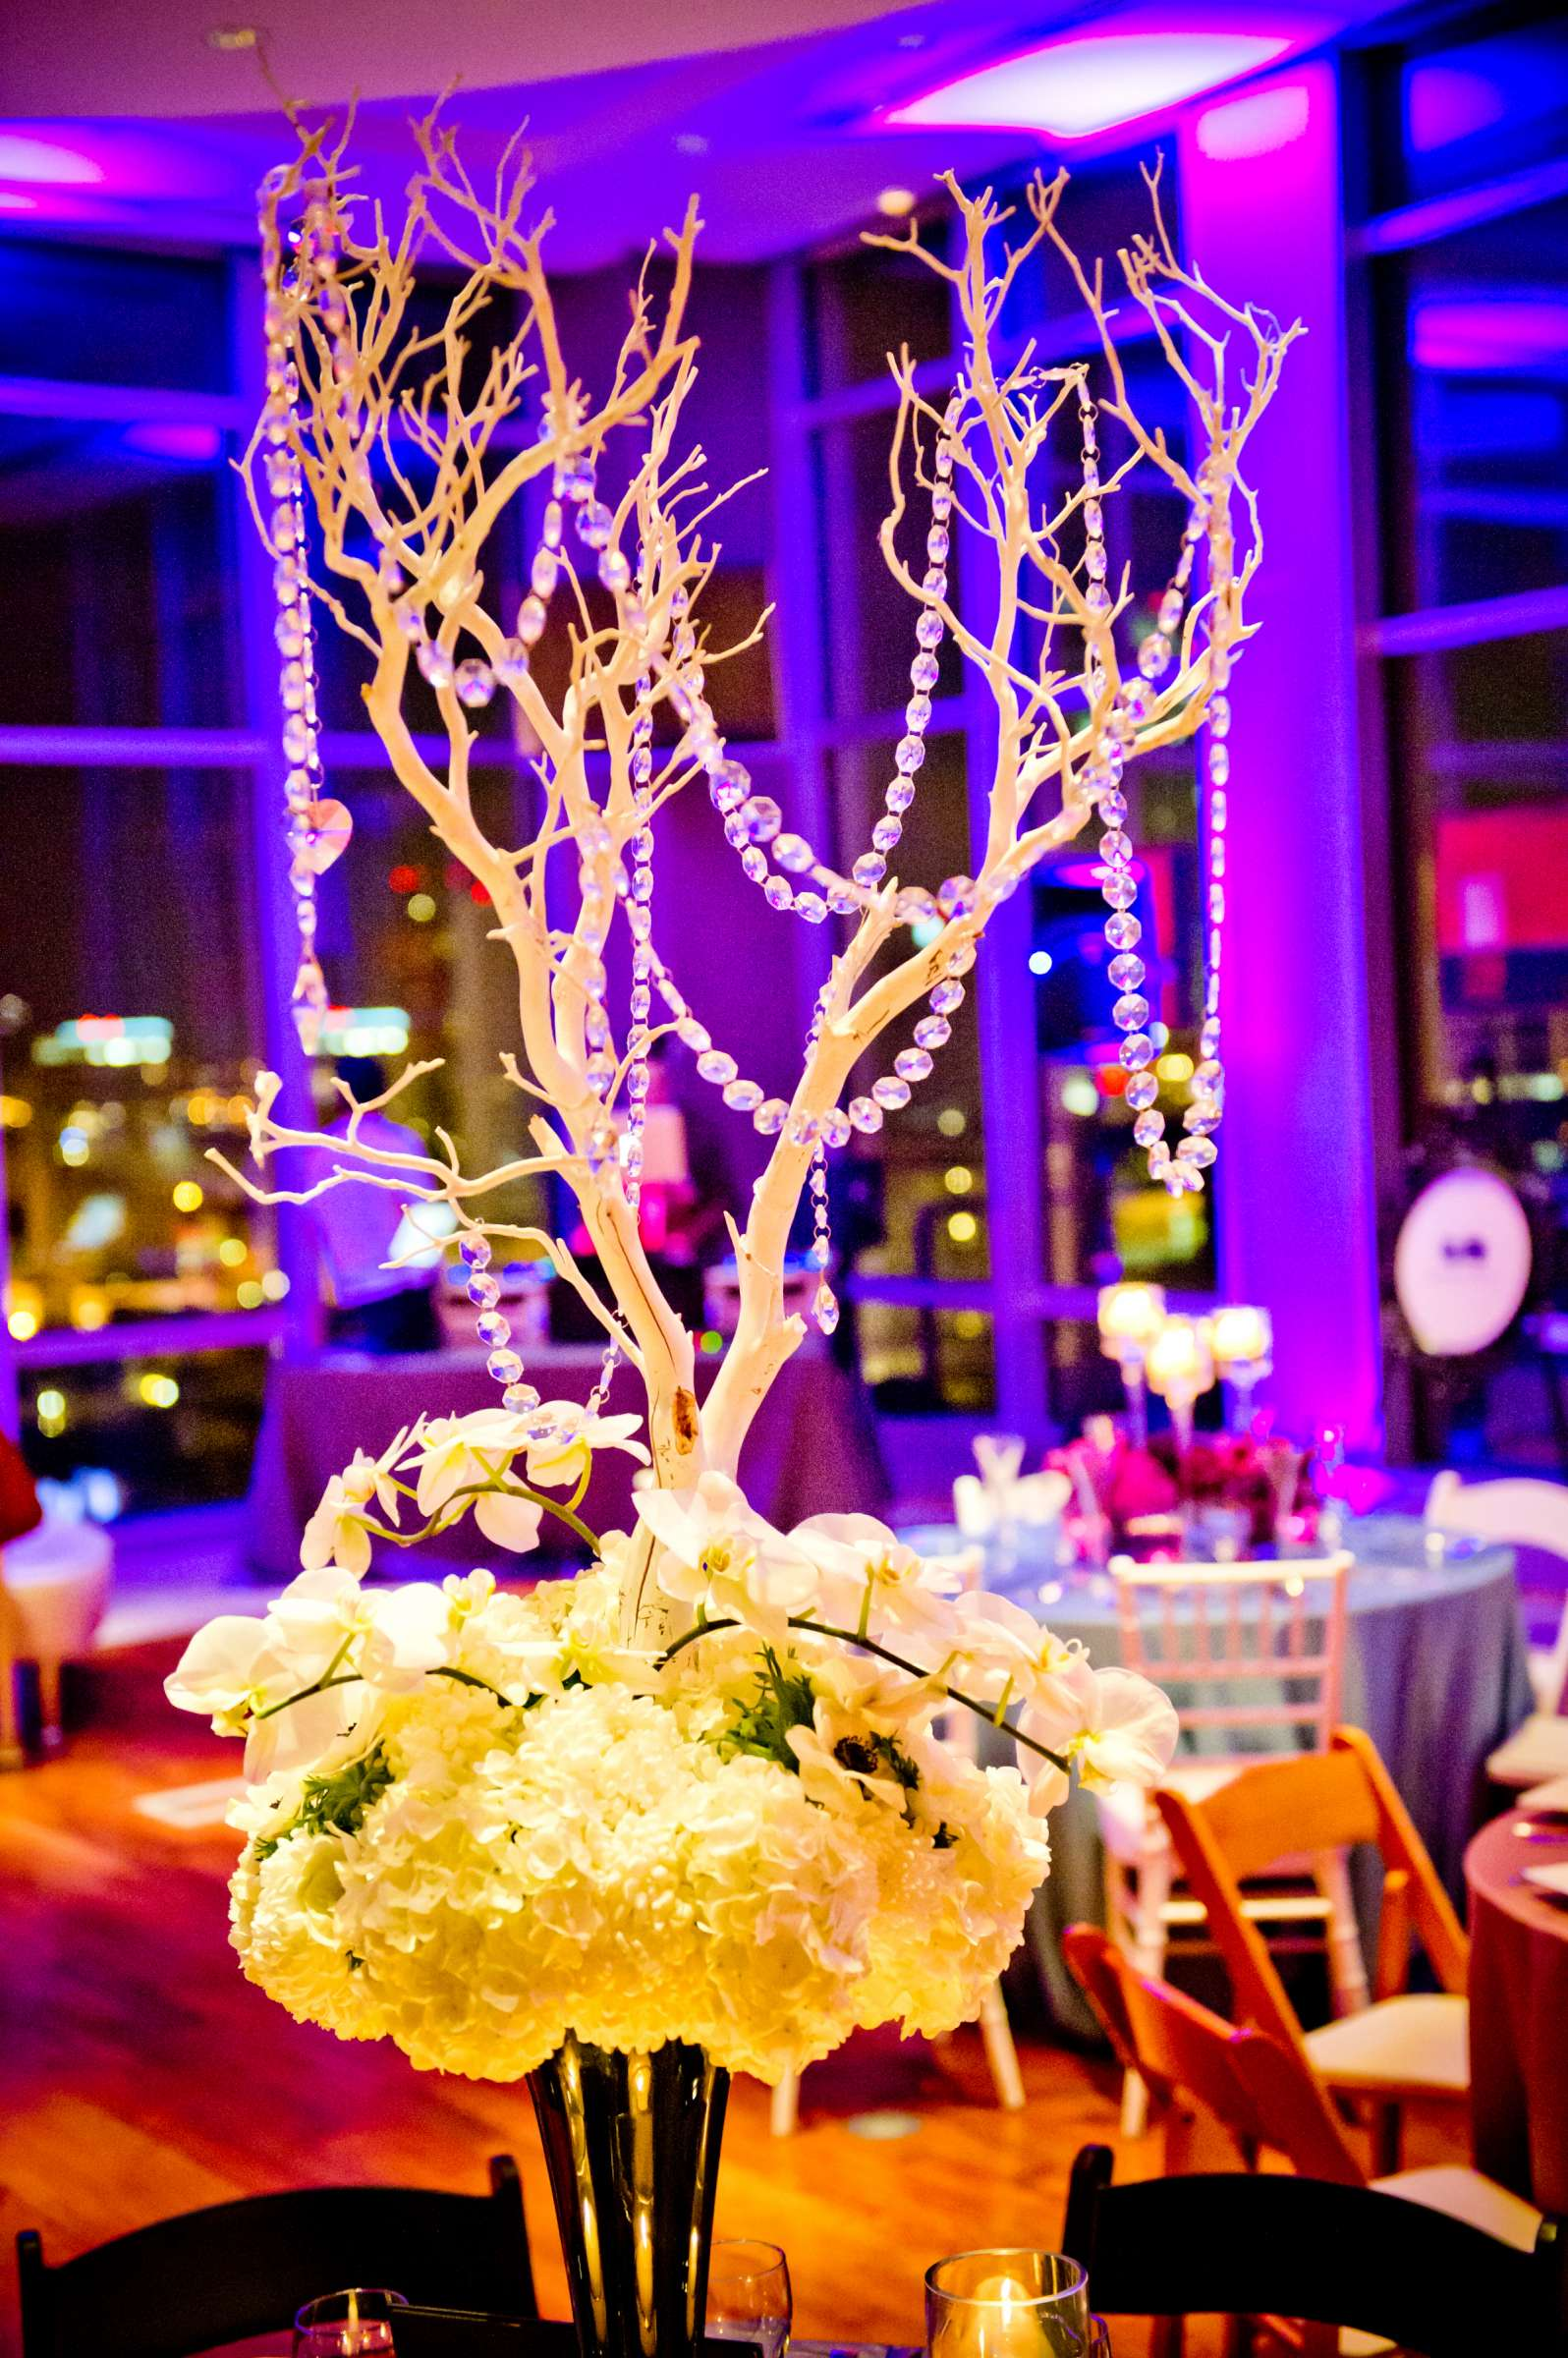 Ultimate Skybox Wedding coordinated by Creative Affairs Inc, Open House Wedding Photo #41 by True Photography